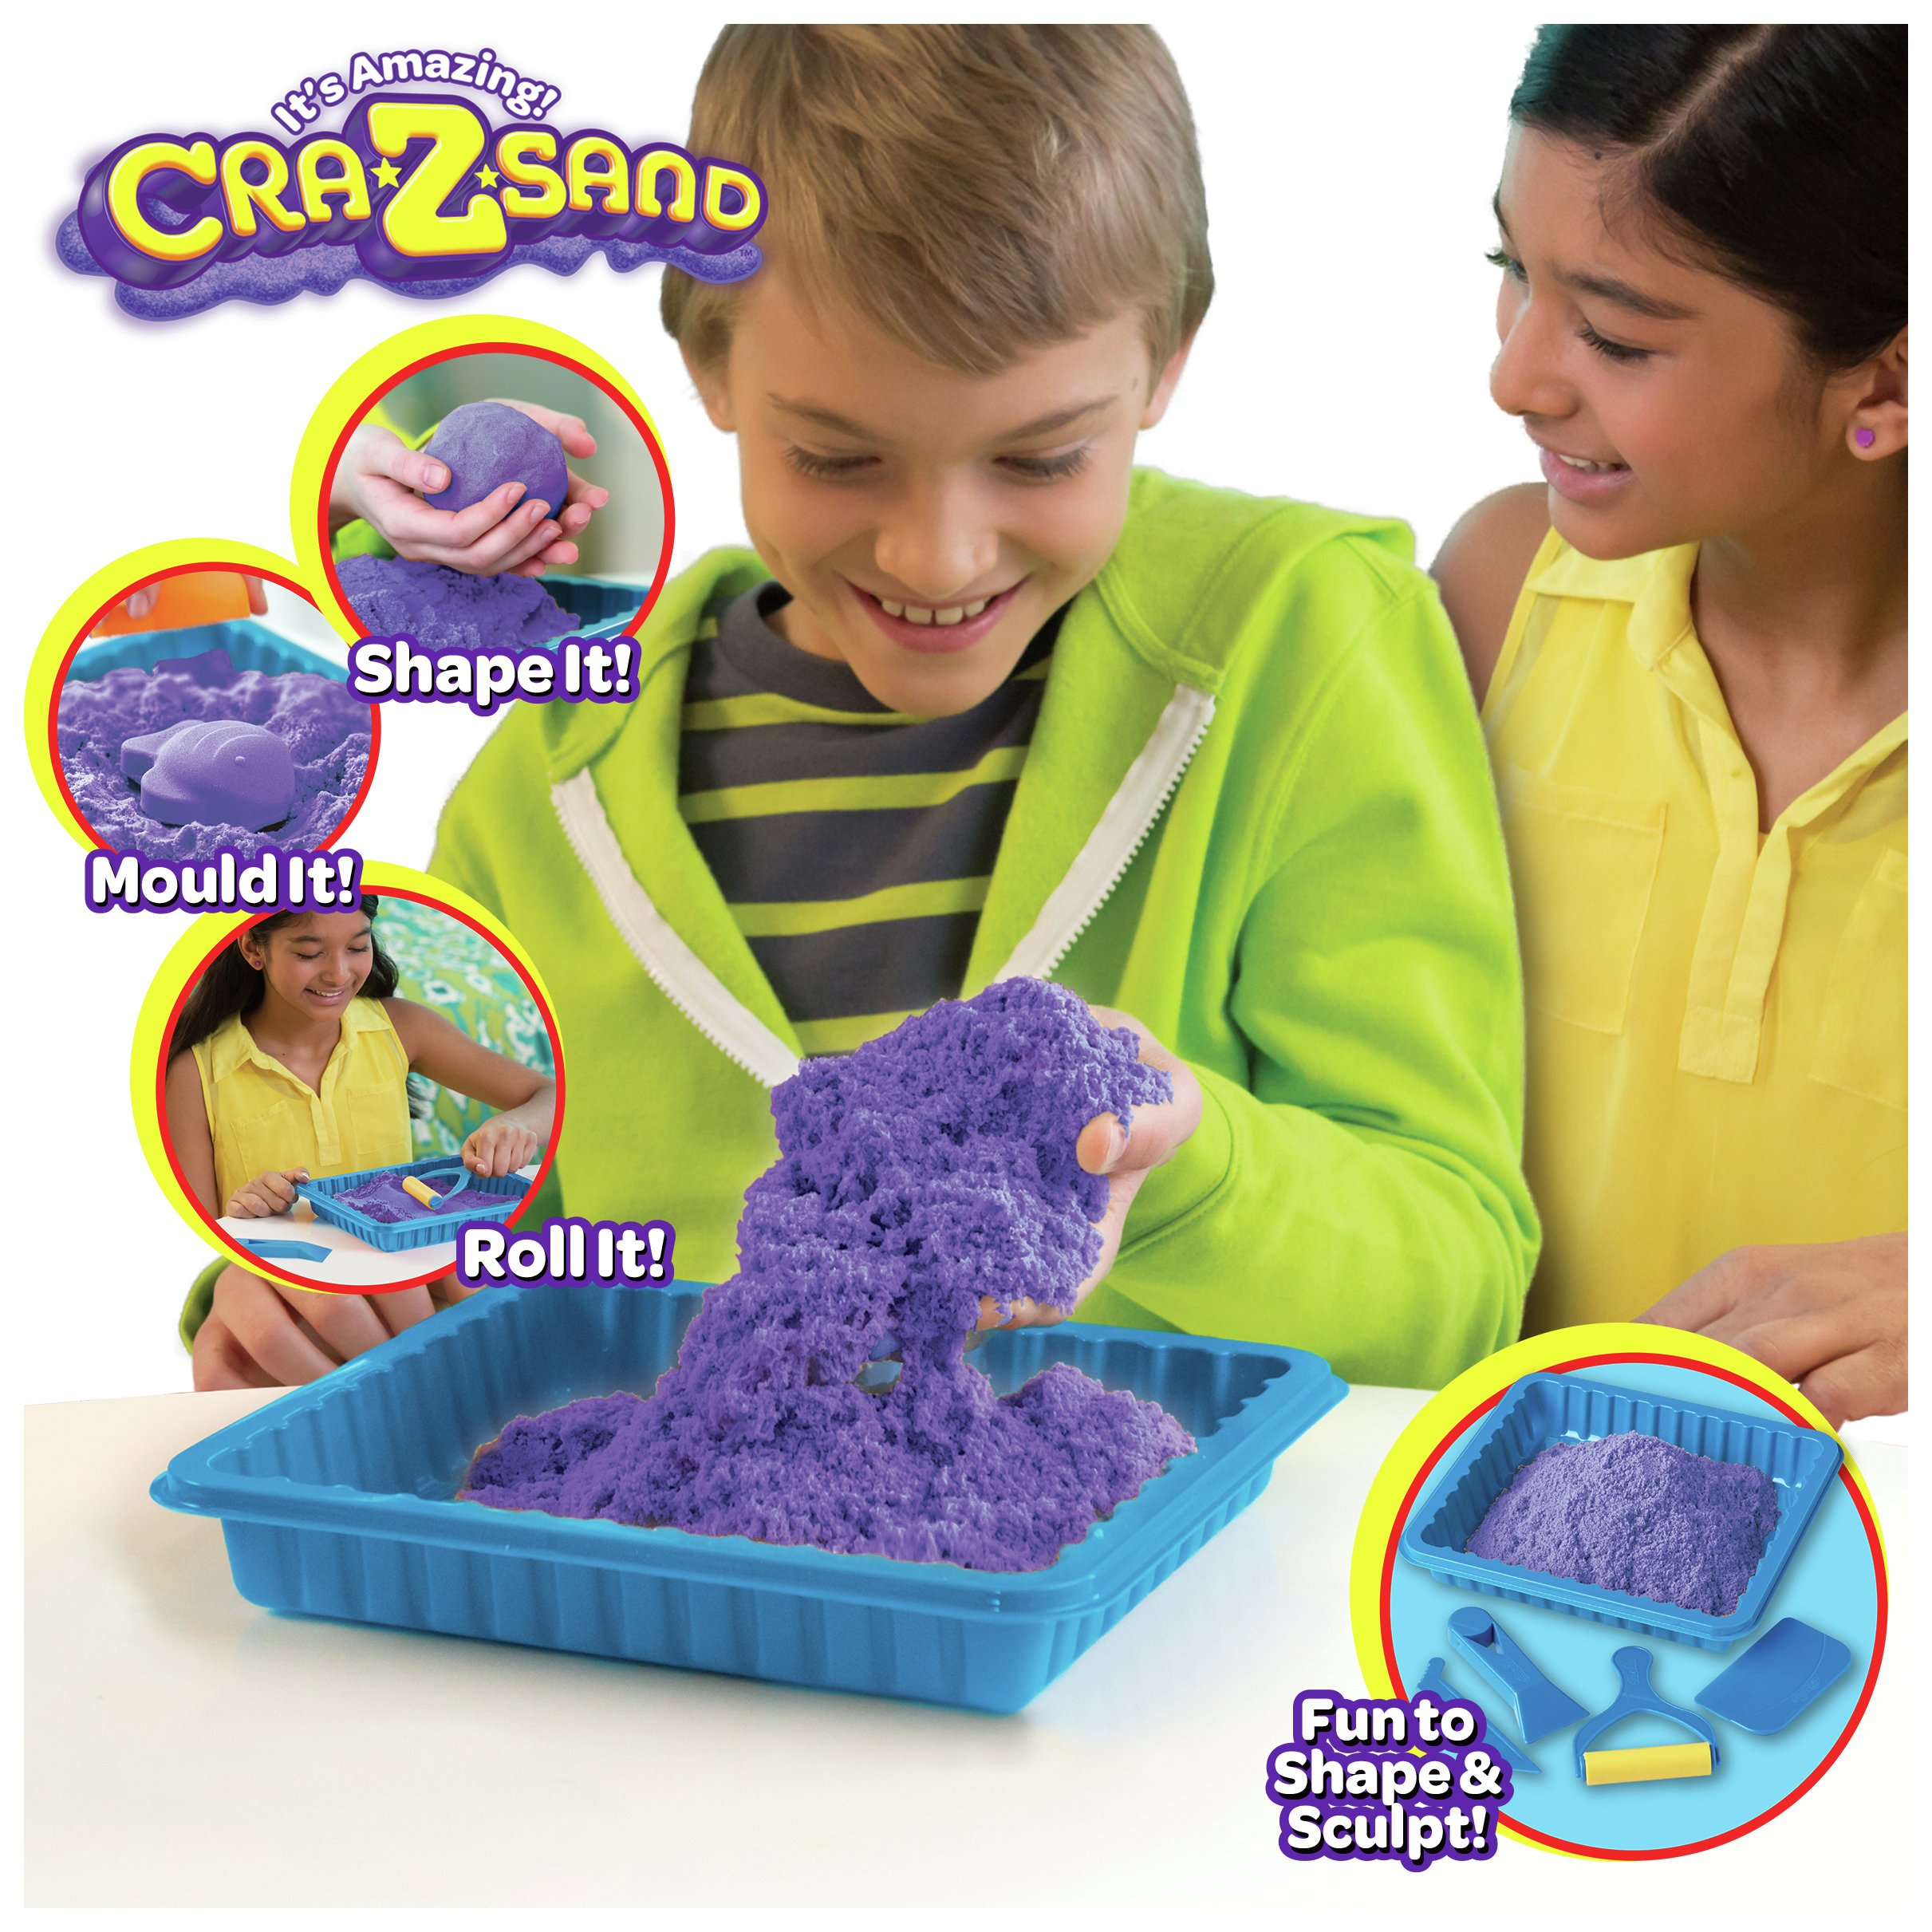 Image of Cra-Z-Sand Deluxe Sand Playset